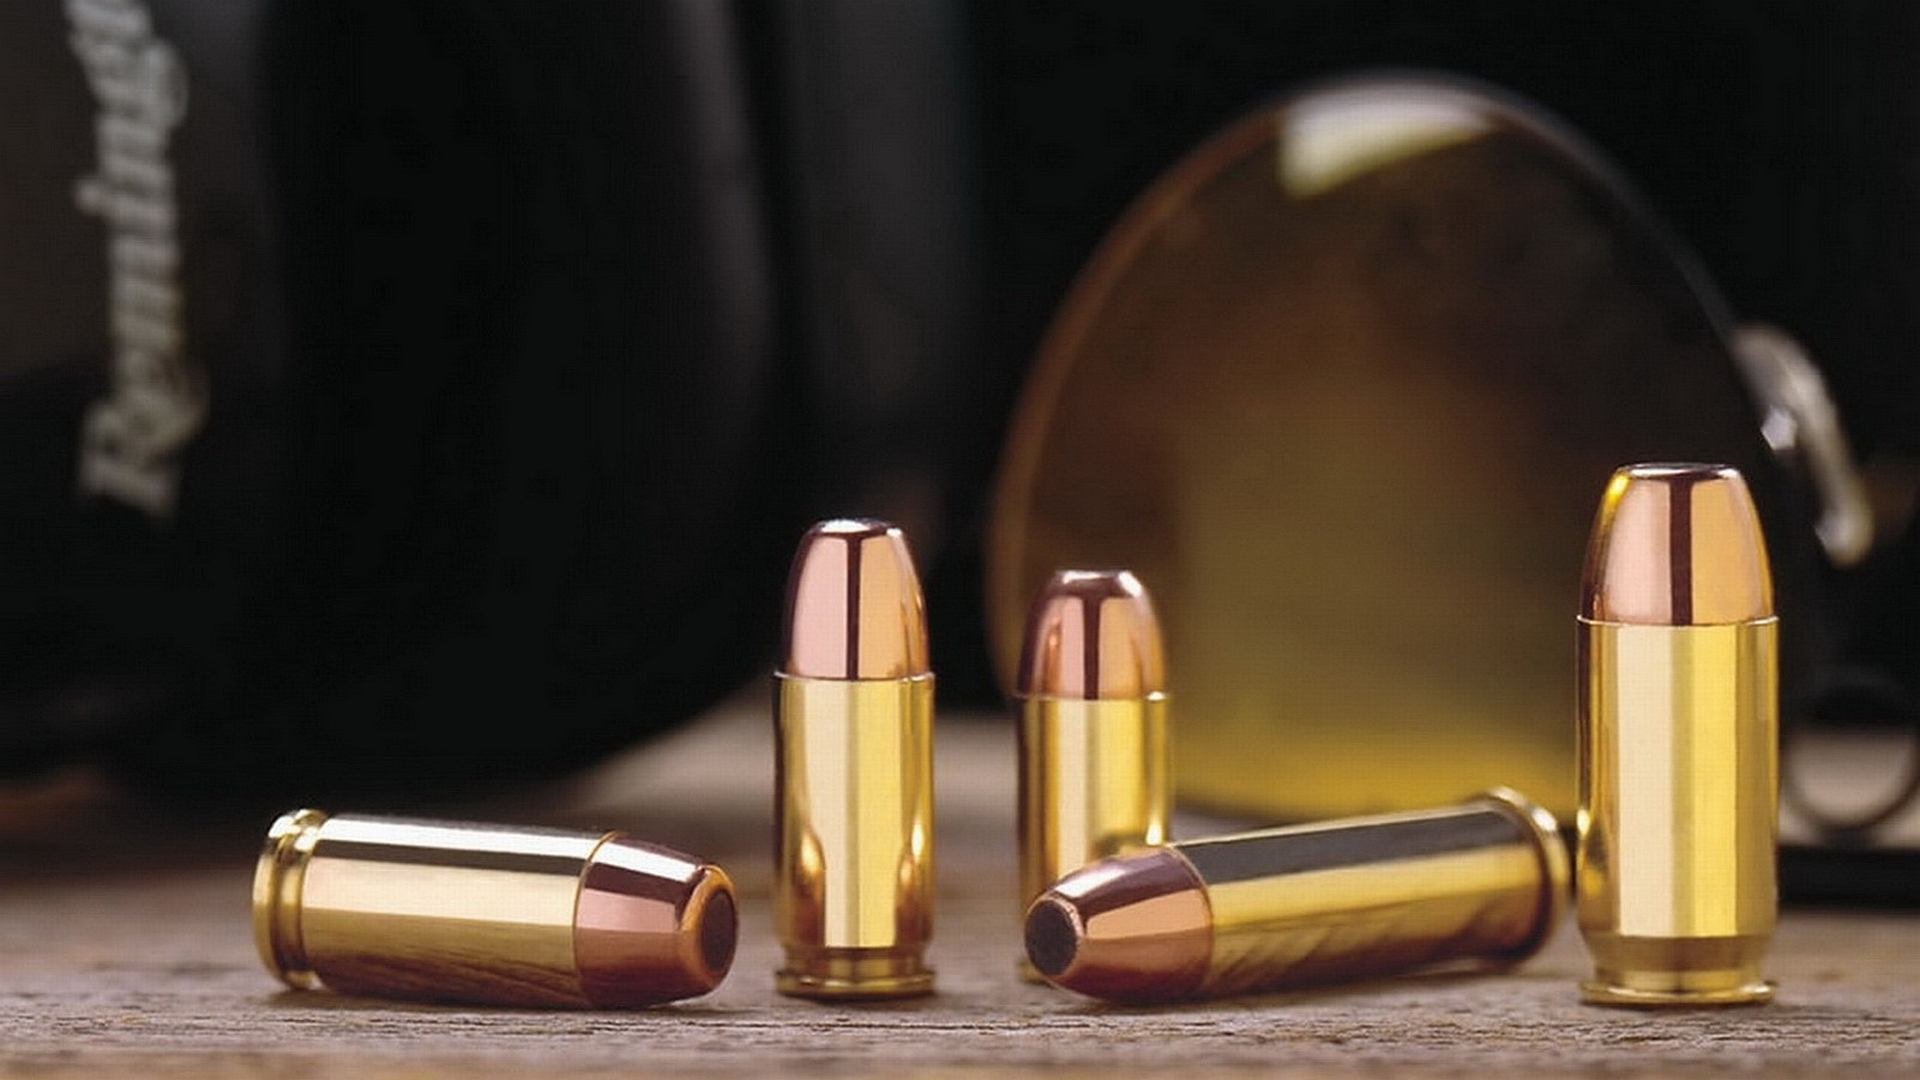 Bullet Image Wallpapers (35 Wallpapers) – Adorable Wallpapers